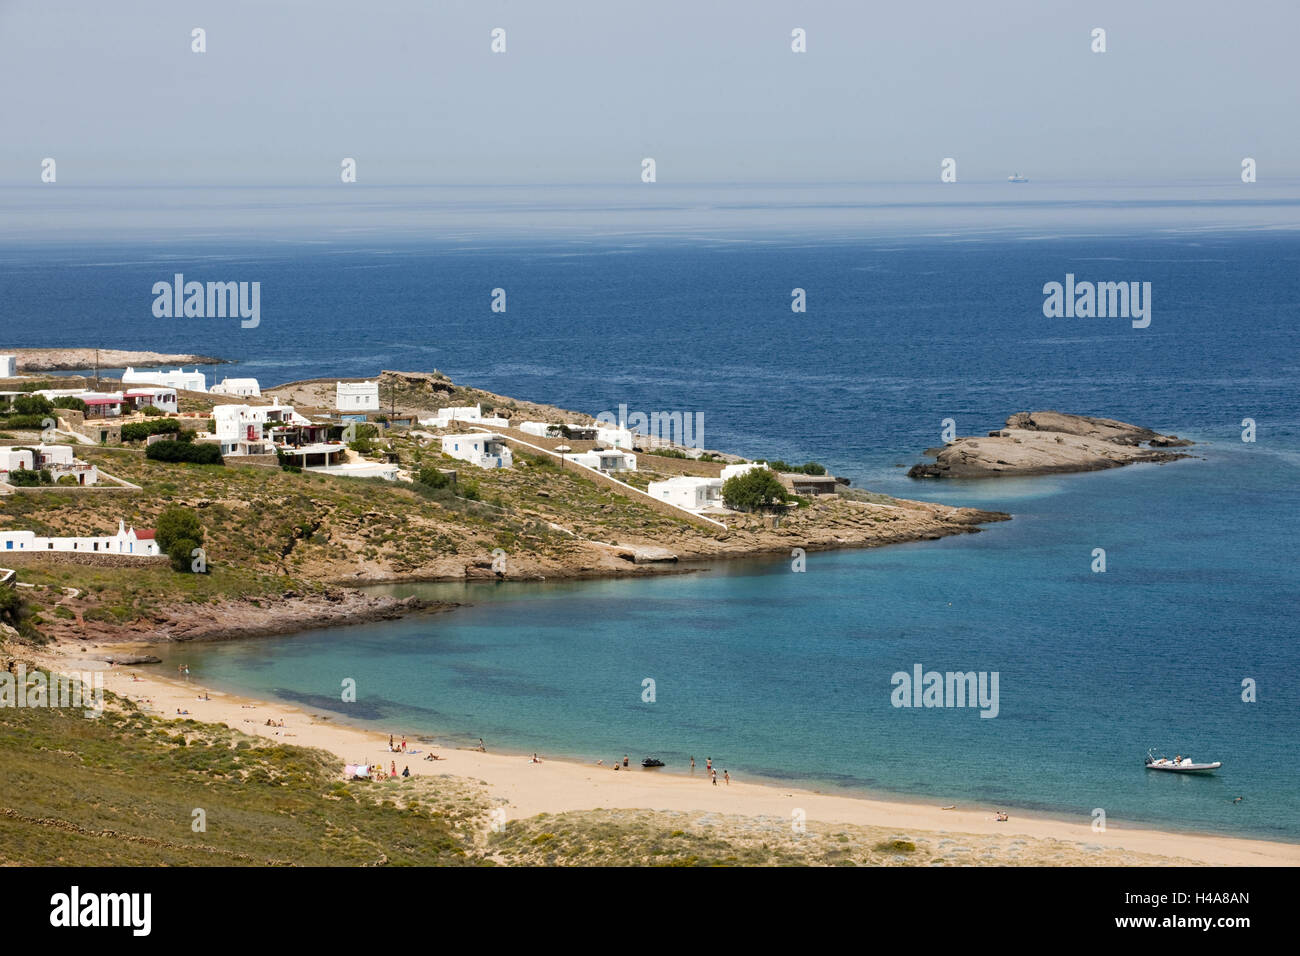 Greece, the Cyclades, Mykonos, agio Sostis, even more disorganised beach, Stock Photo